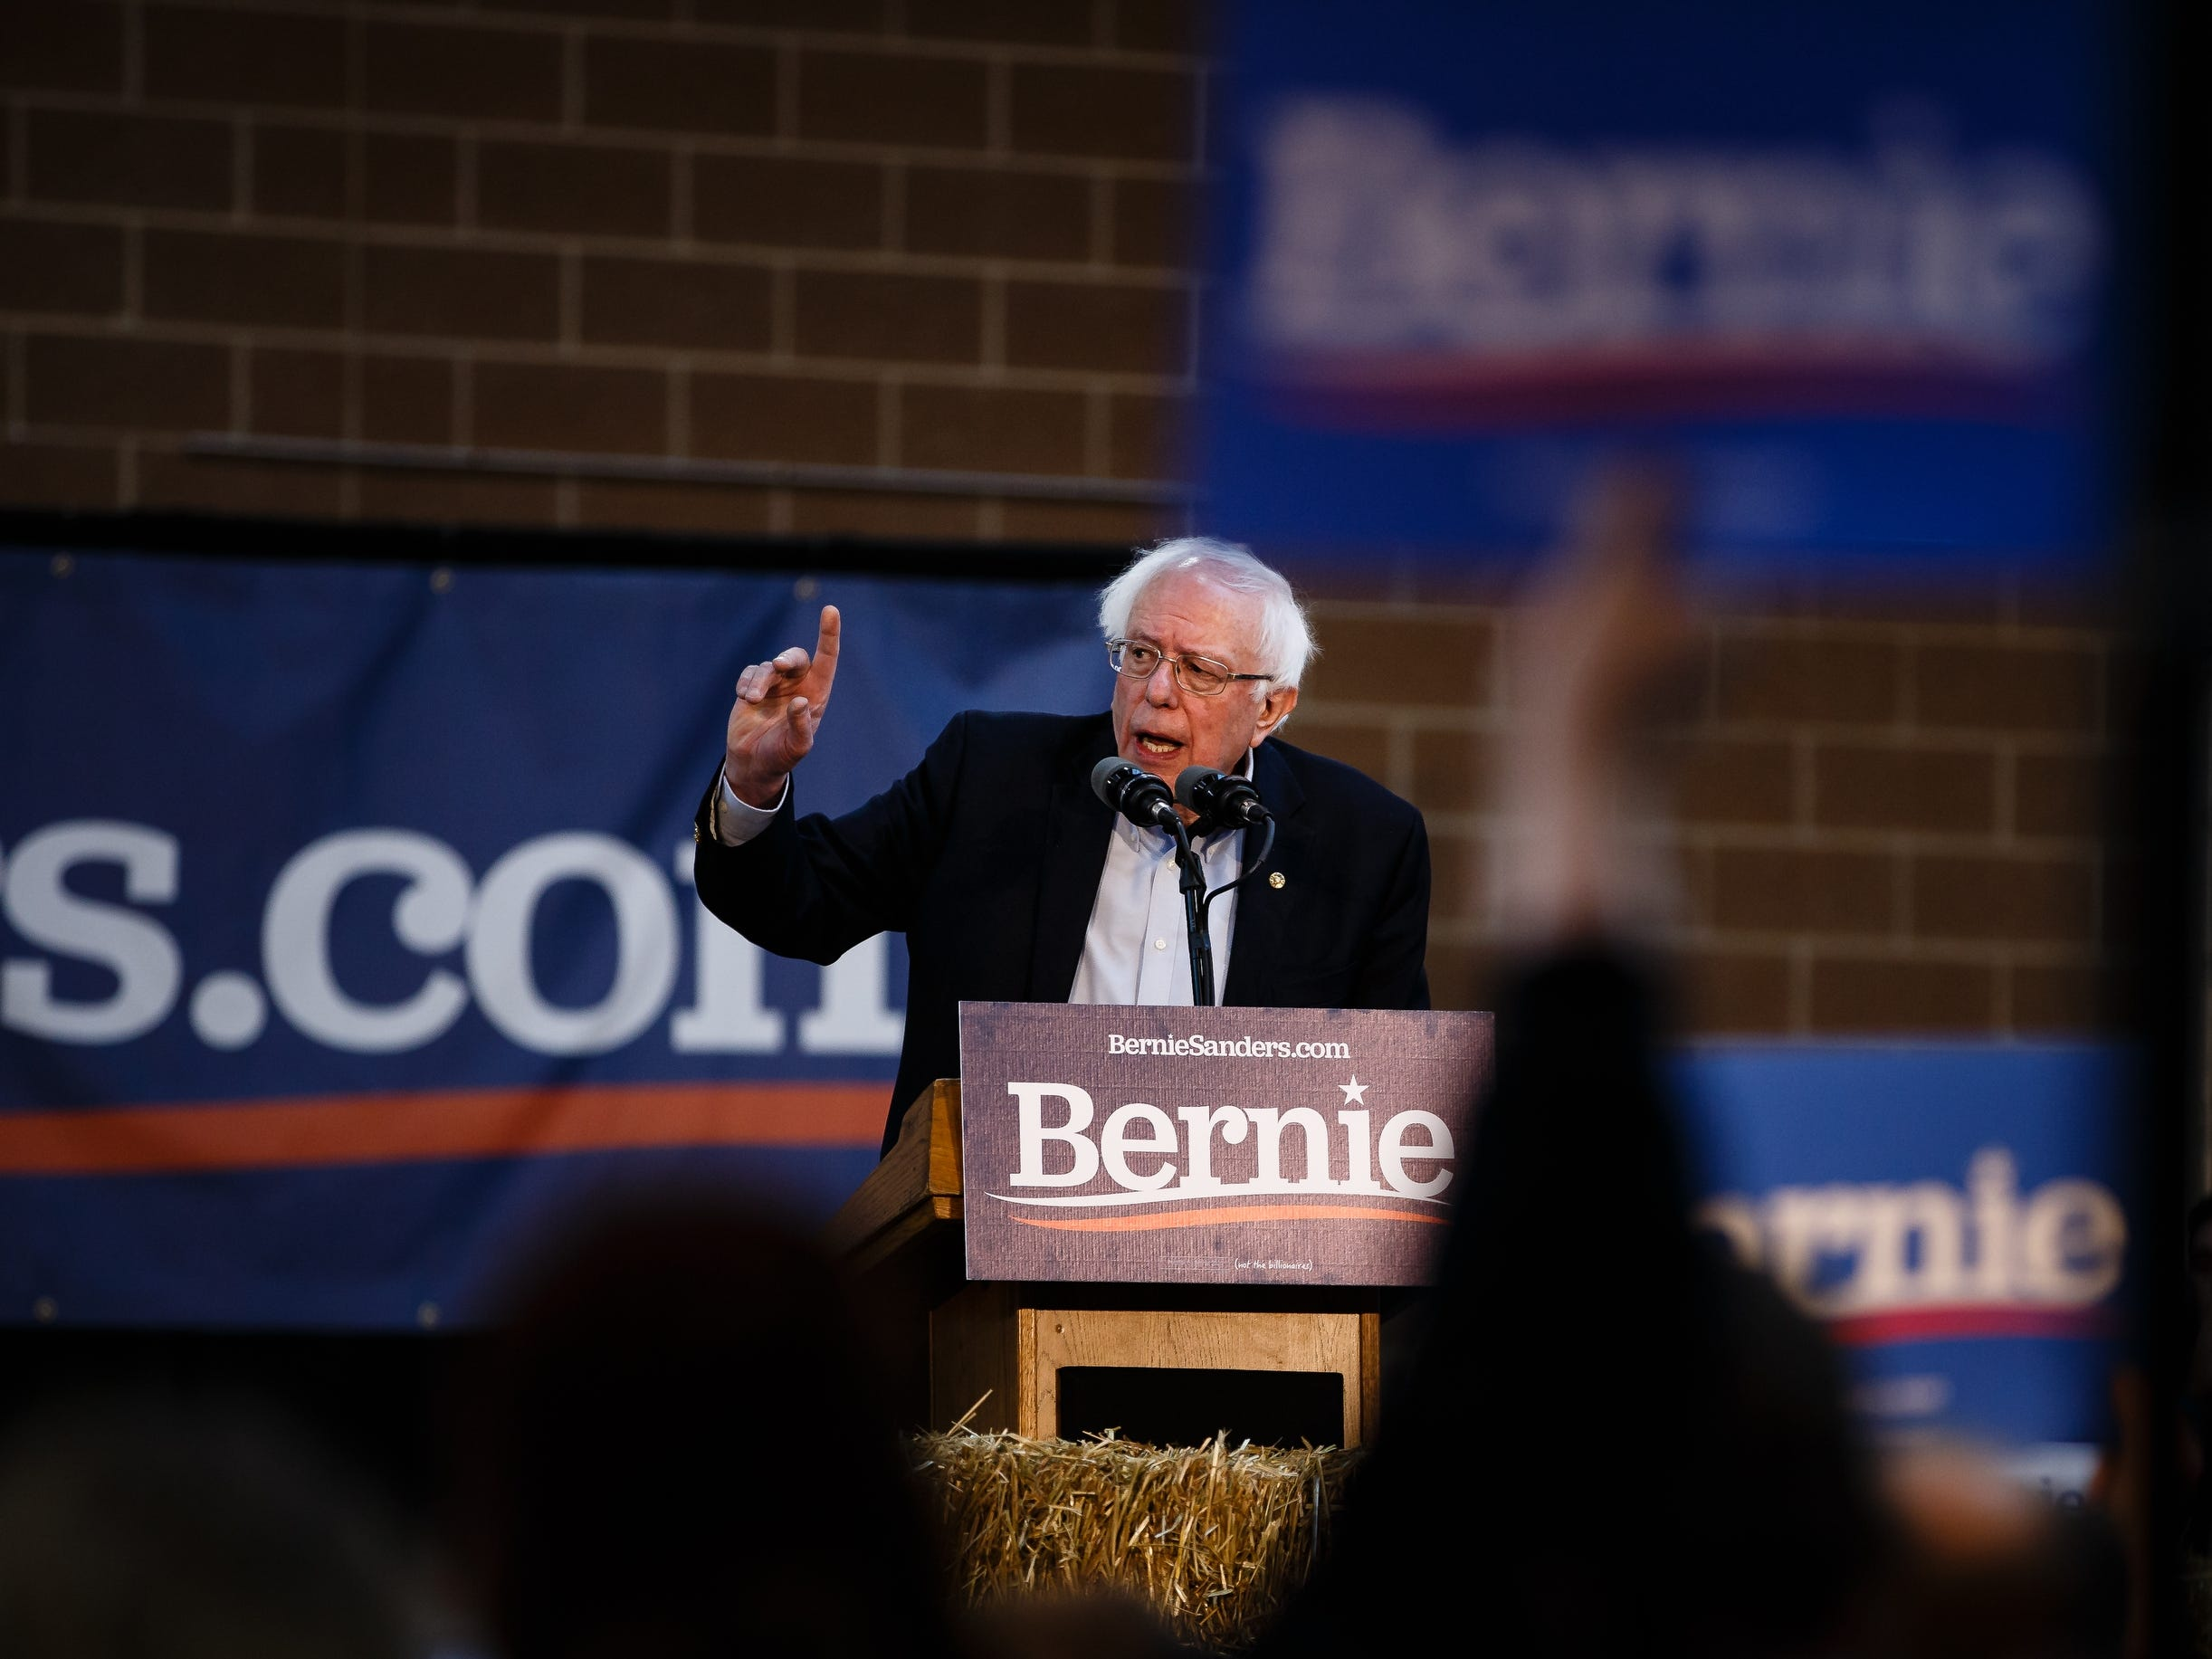 Democratic presidential candidate Bernie Sanders speaks during a rally at the Iowa State Fairgrounds on Saturday, March 9, 2019 in Des Moines.